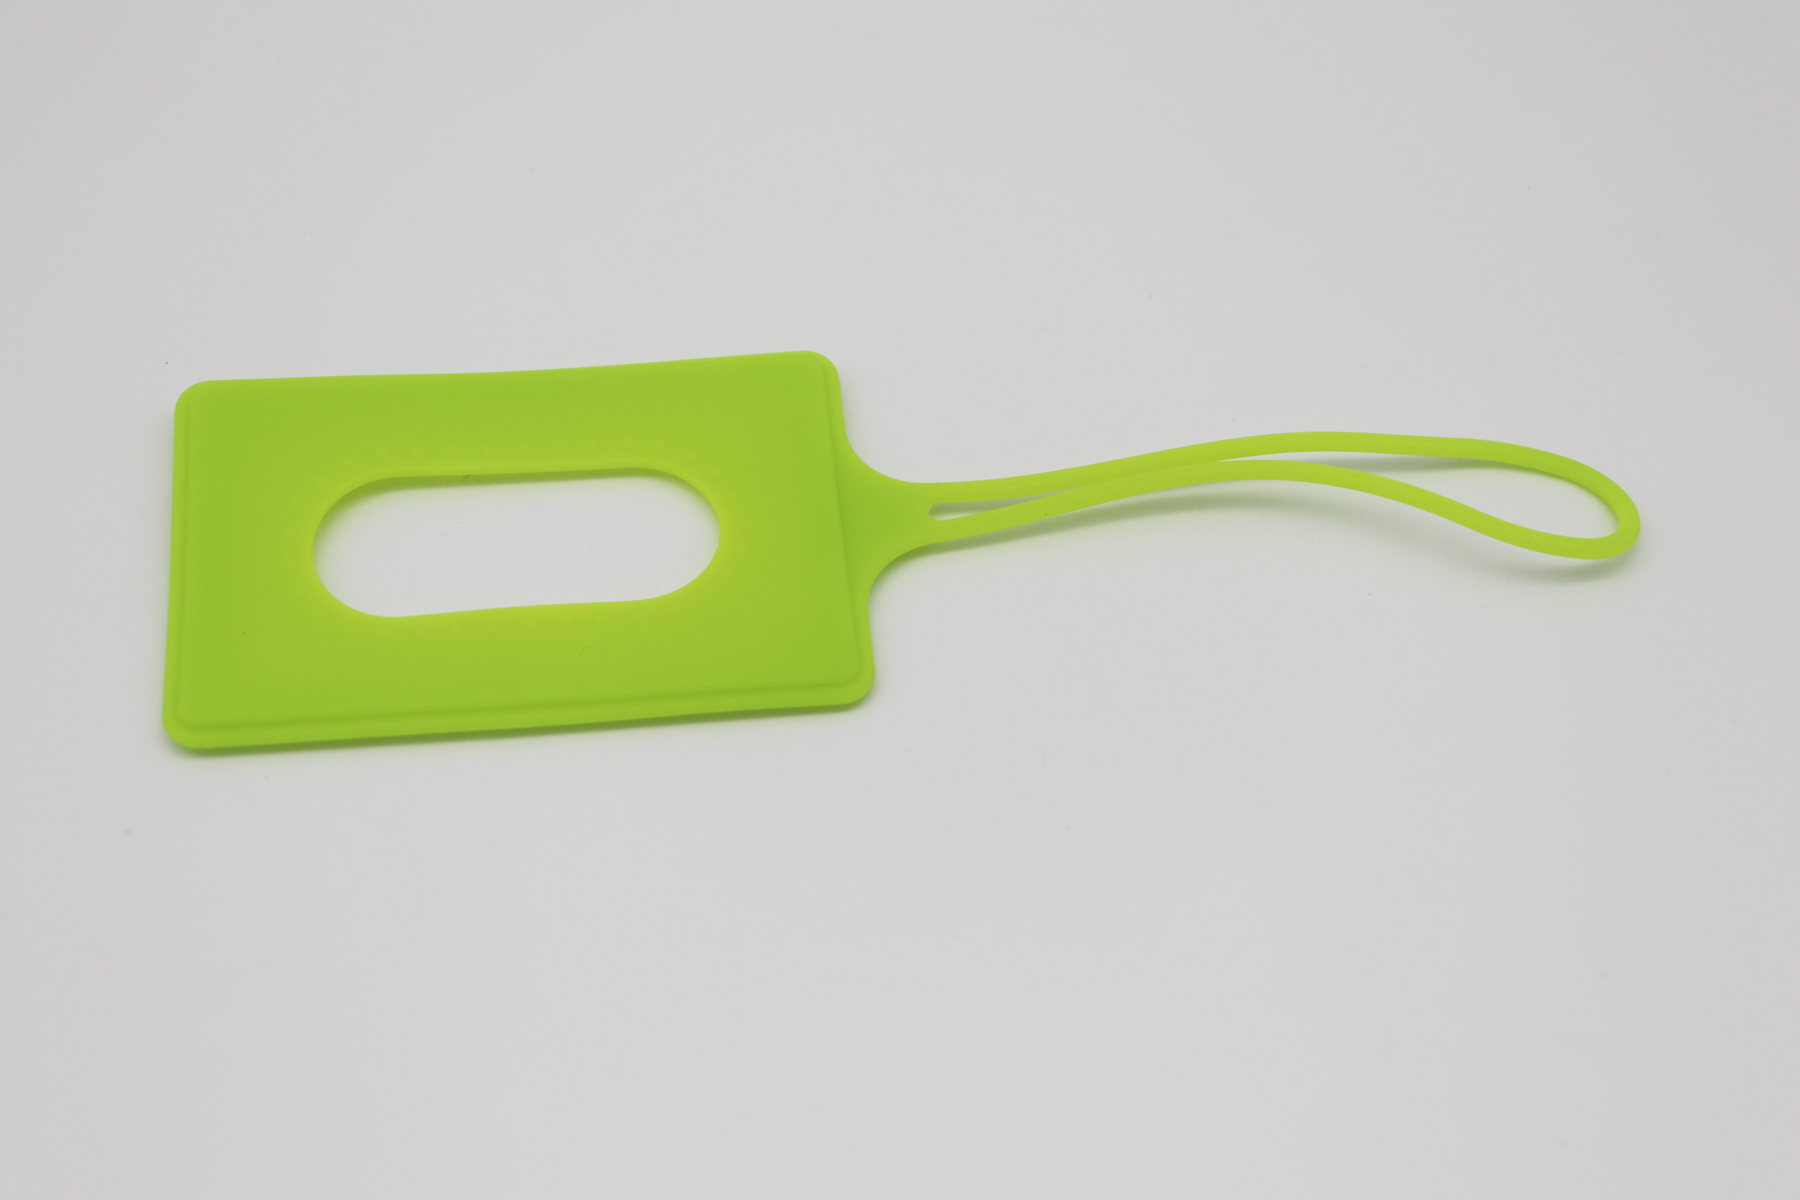 http://www.refinehksilicone.cn/data/images/product/20180417103533_423.jpg